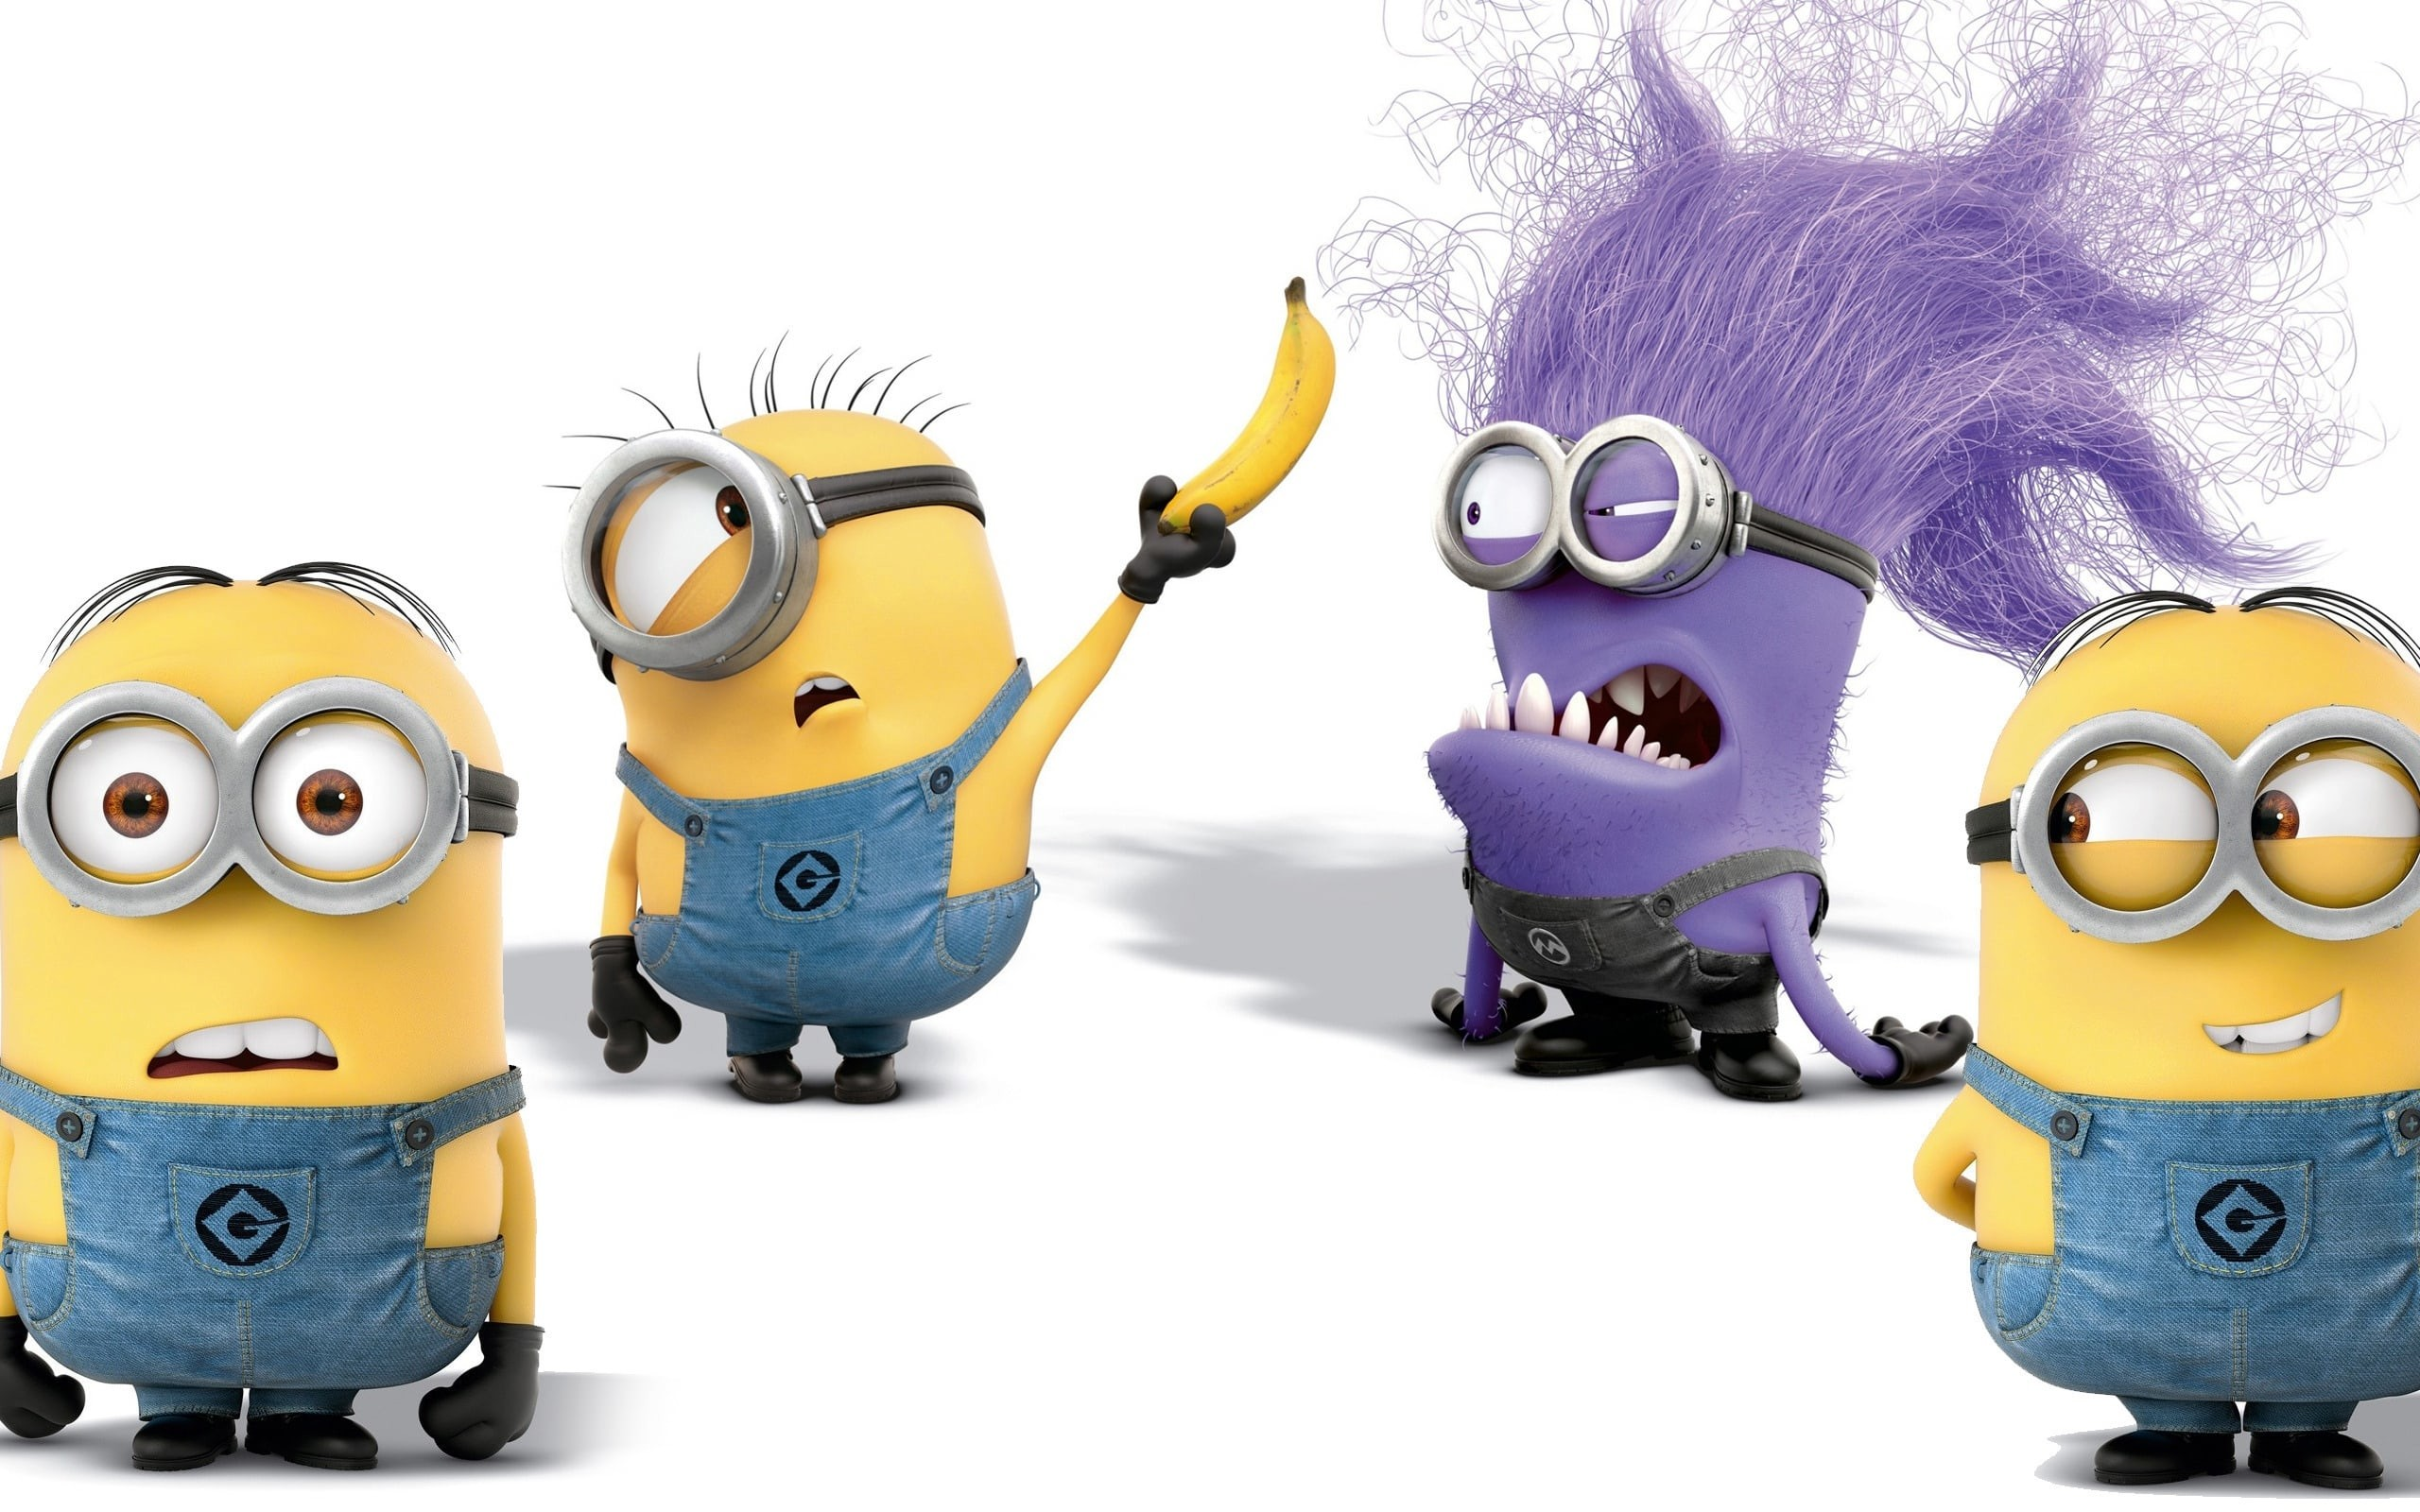 2560x1600 Minions Download Minions desktop wallpaper